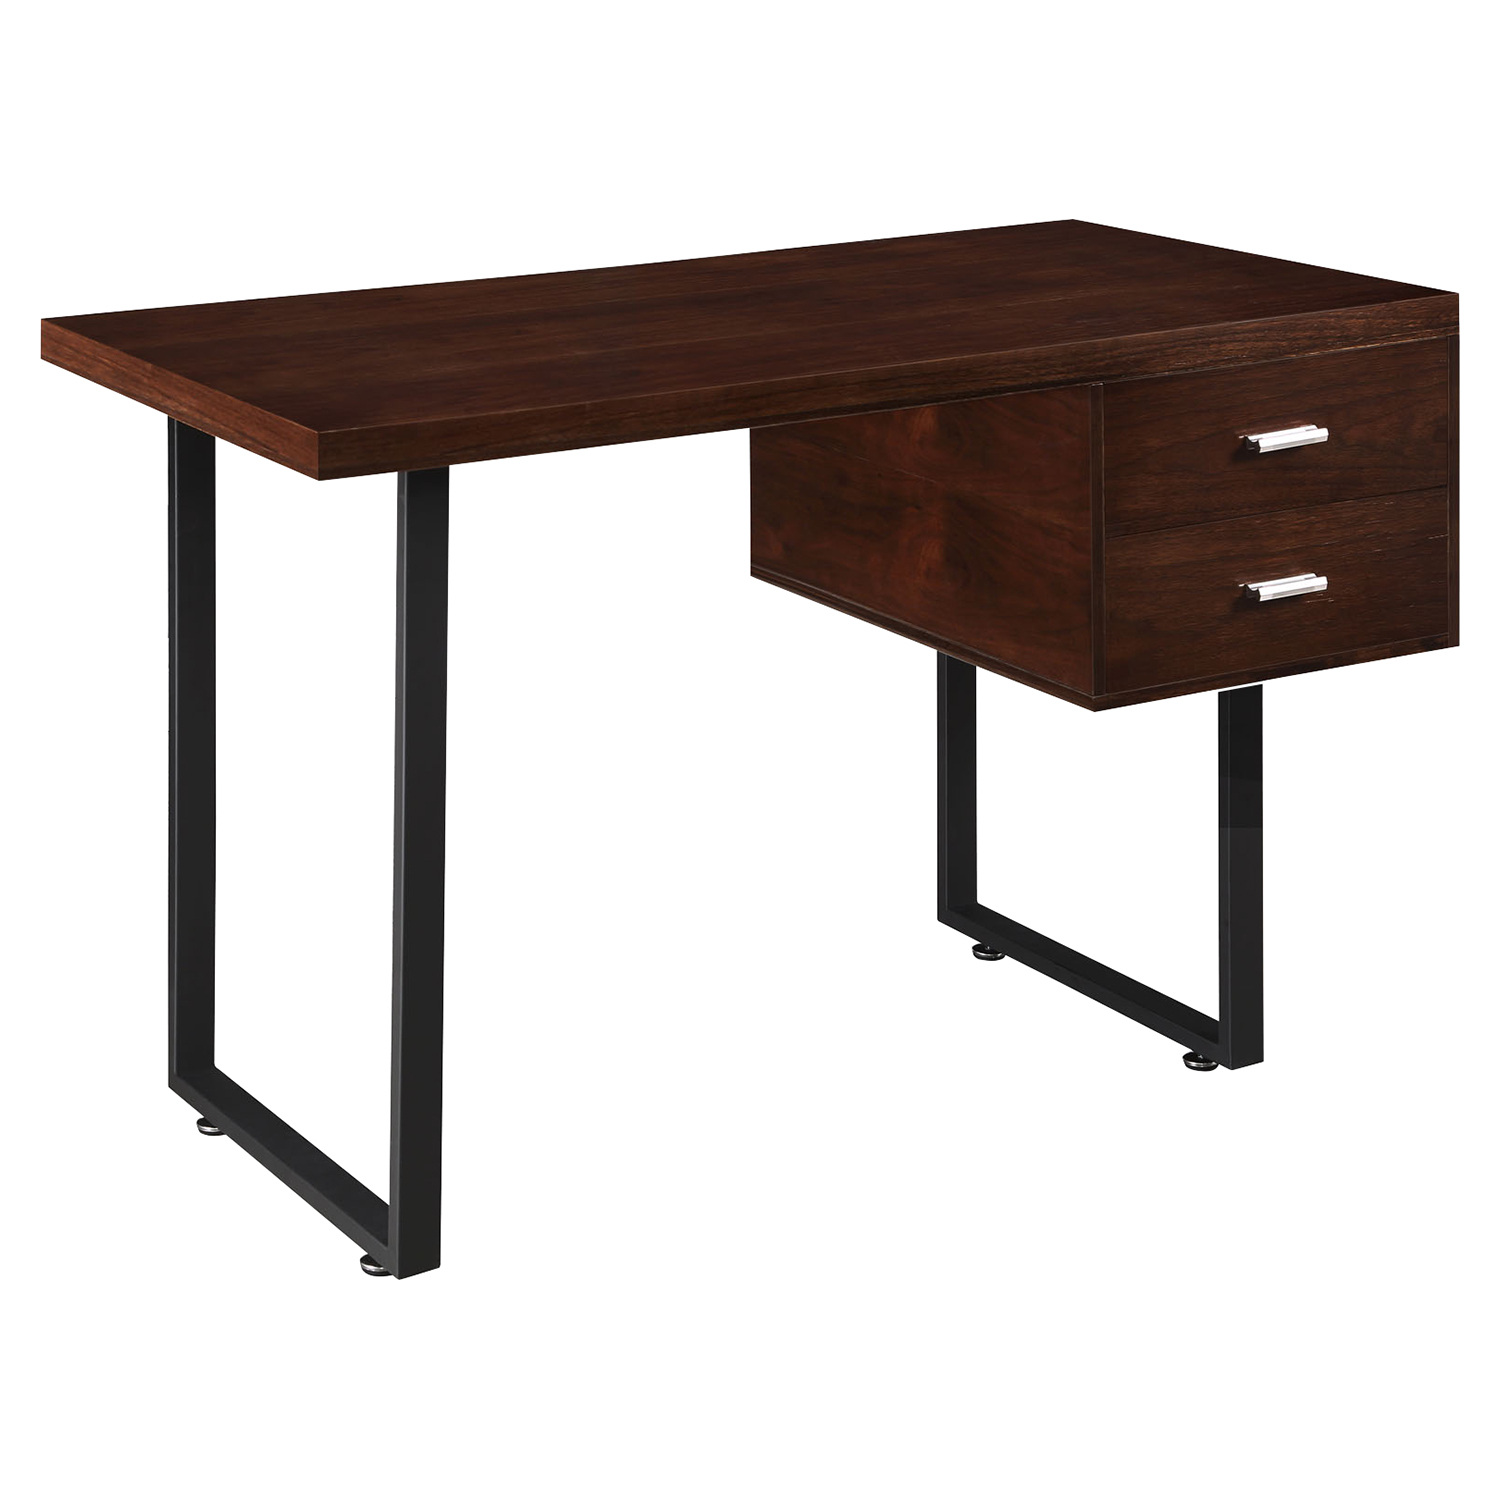 Turn 2 Drawers Office Desk - Walnut